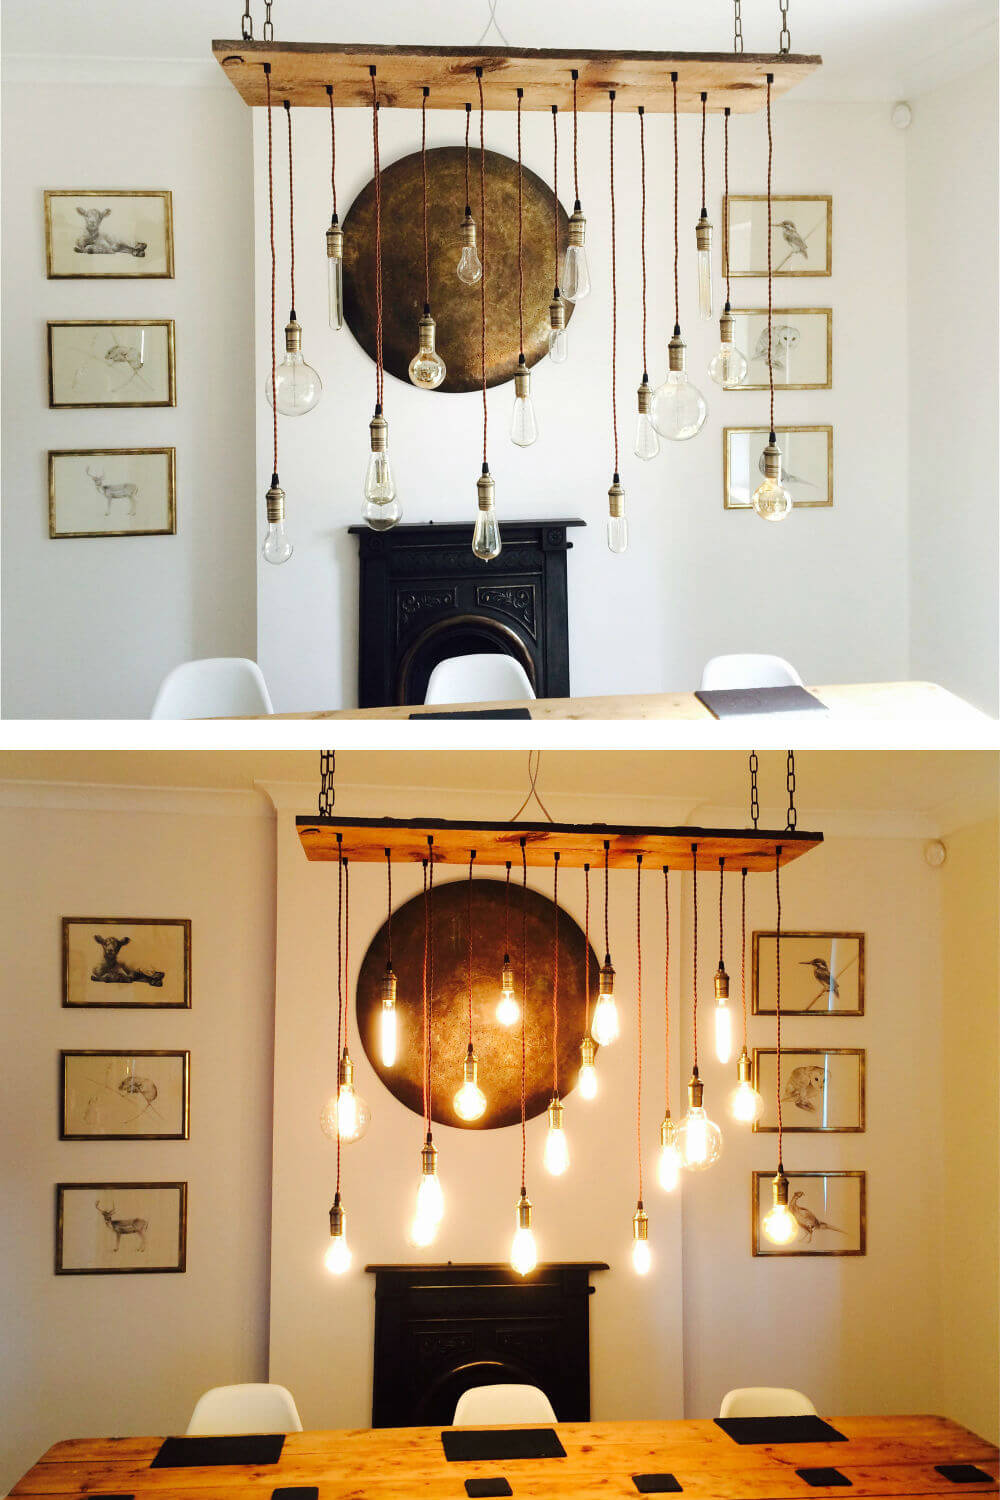 Seventeen Lights Illuminate This Rustic Chandelier